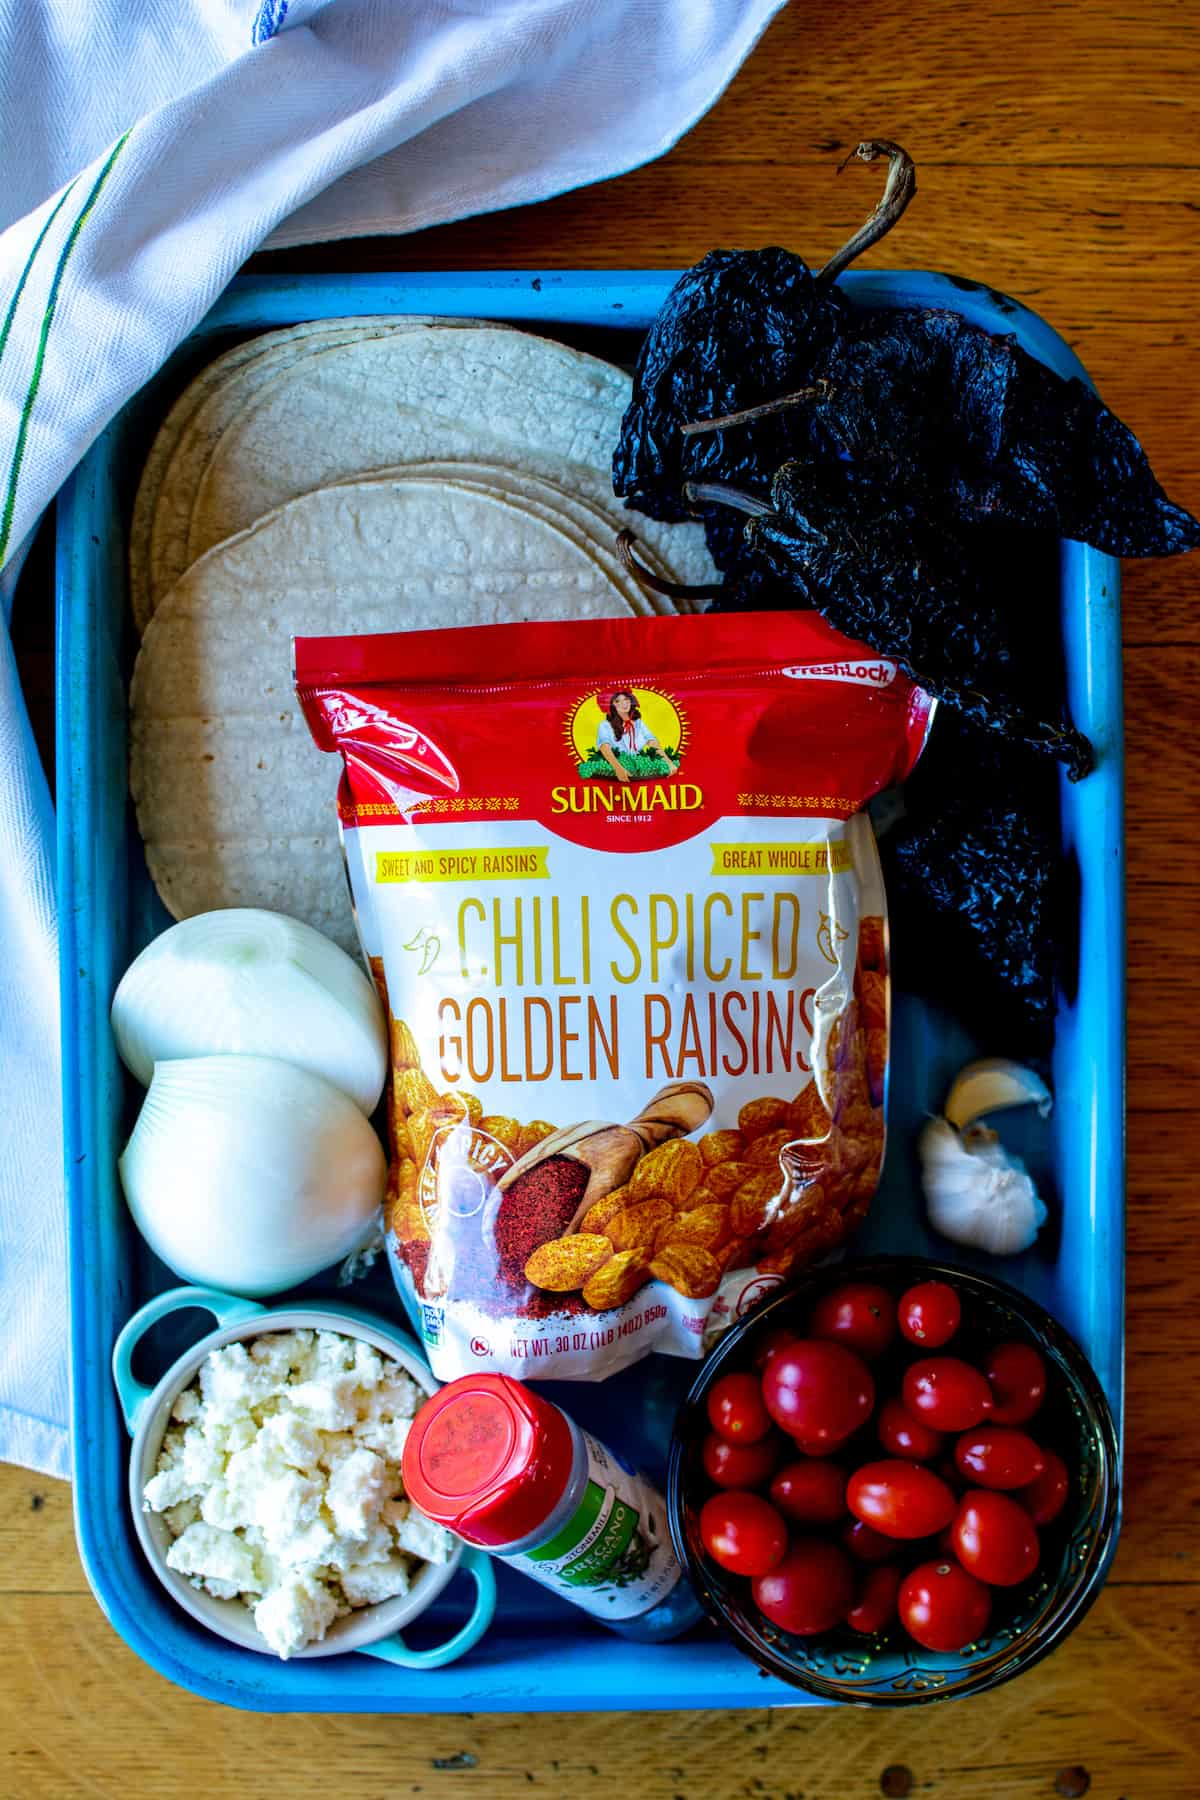 An overhead image of the ingredients to make cheese enchiladas, including golden raisins, dried chiles, corn tortillas, cherry tomatoes and onions.